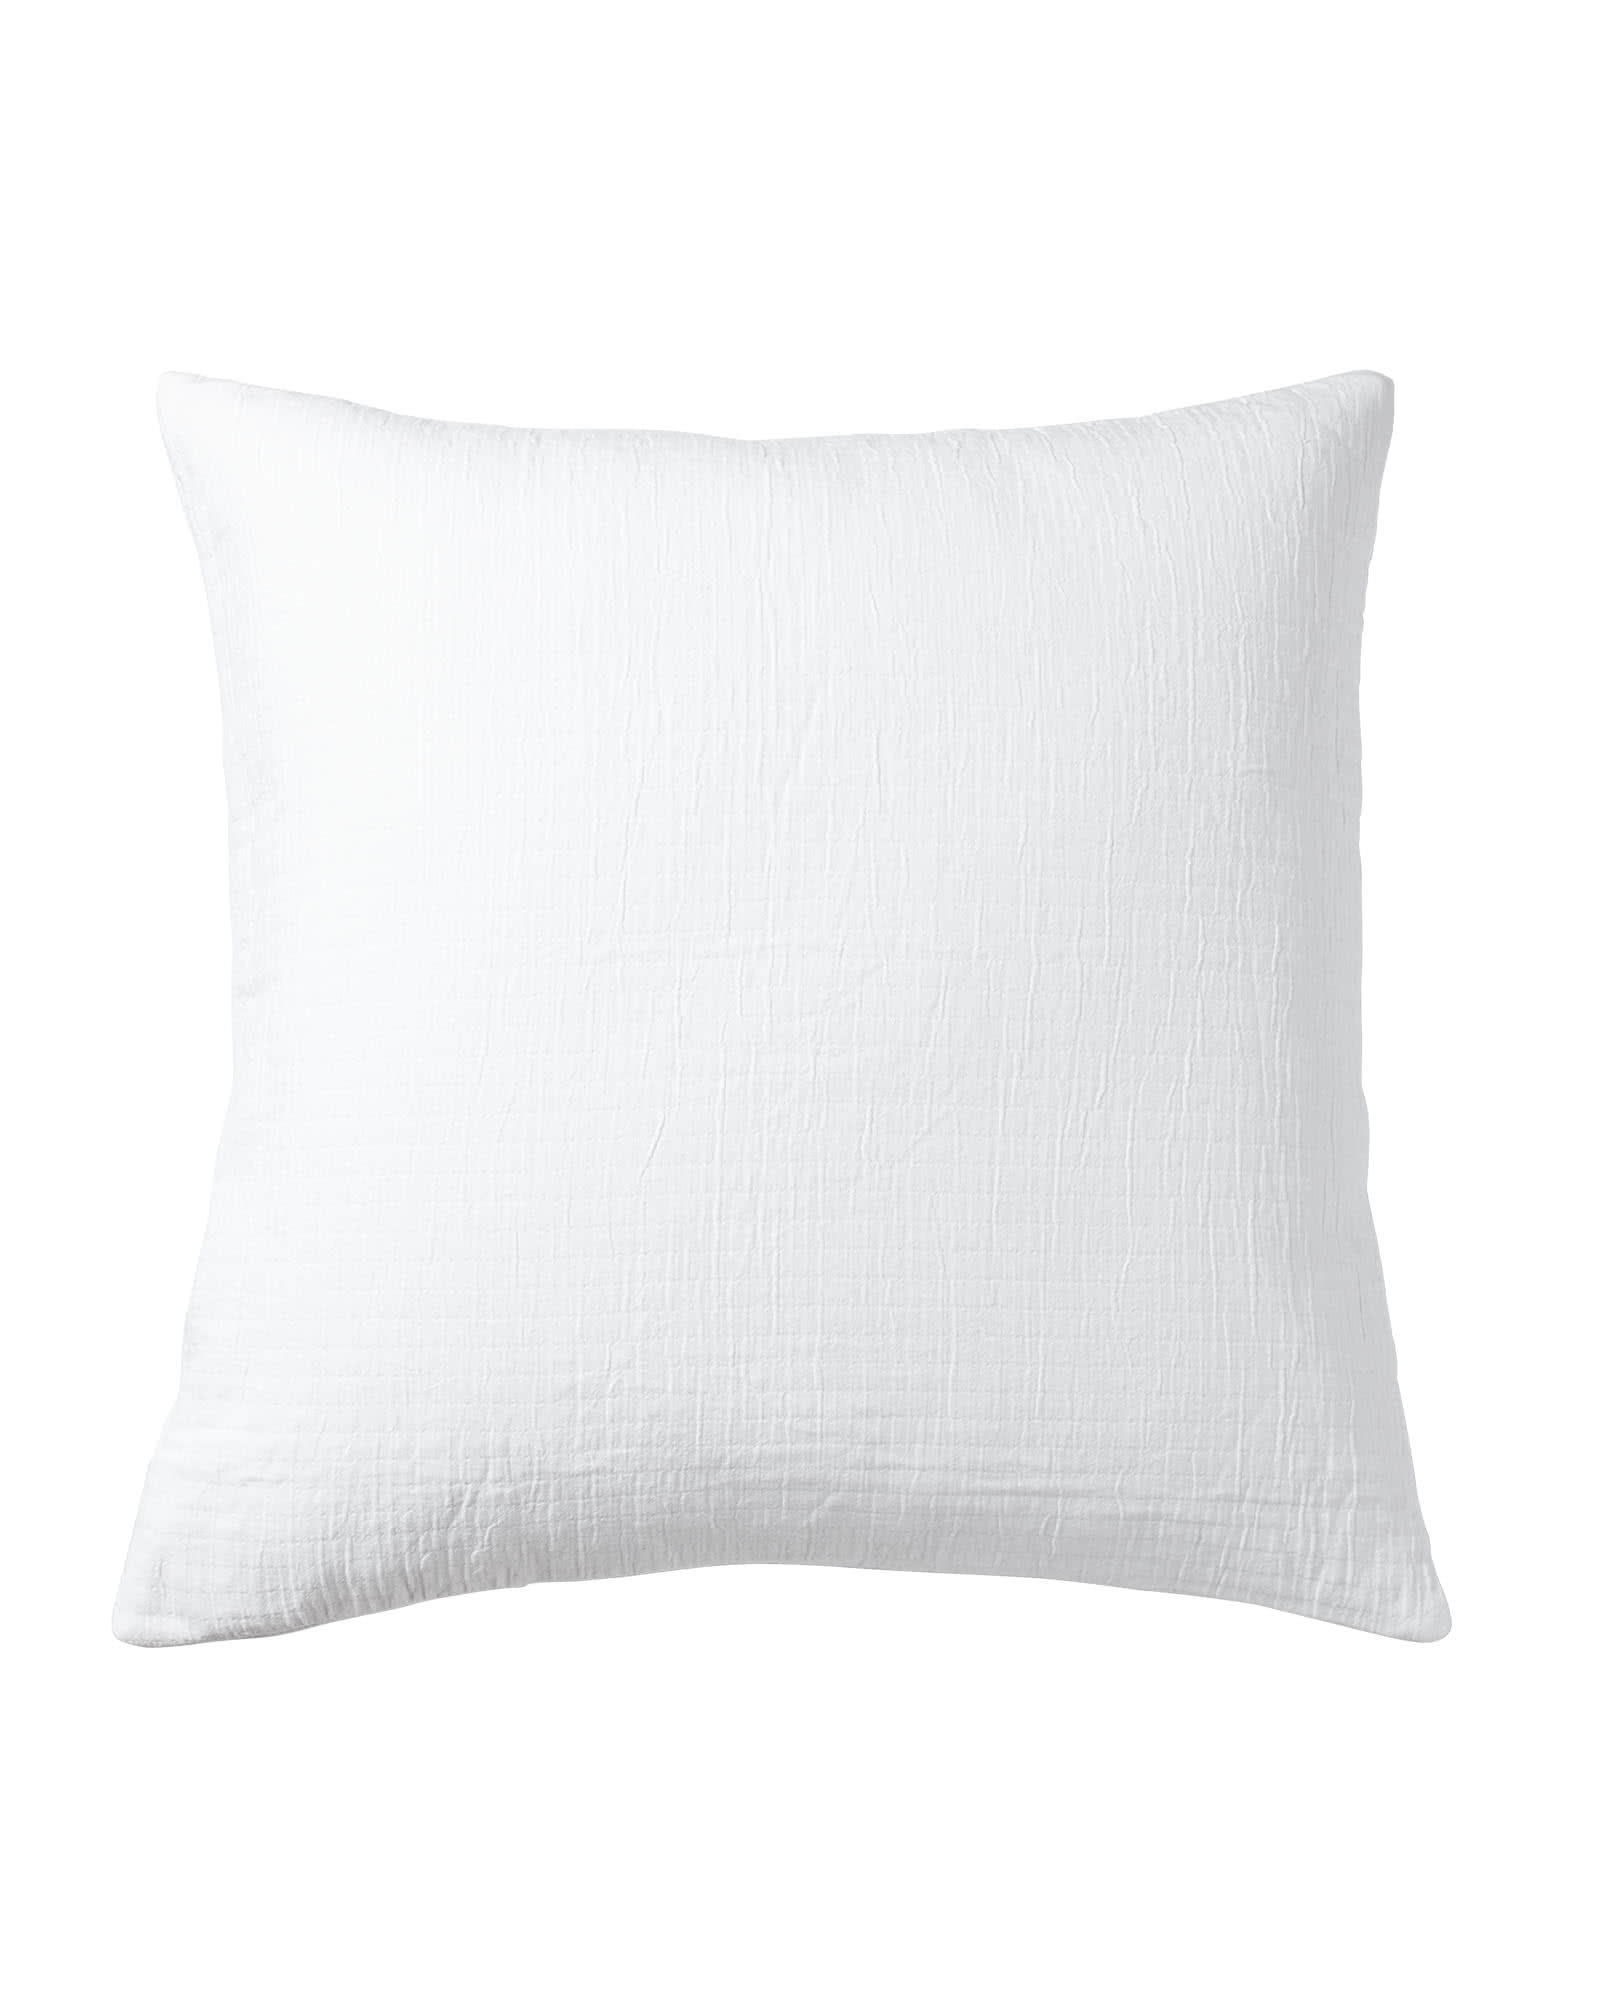 Pickstitch Matelassé Euro Sham, White